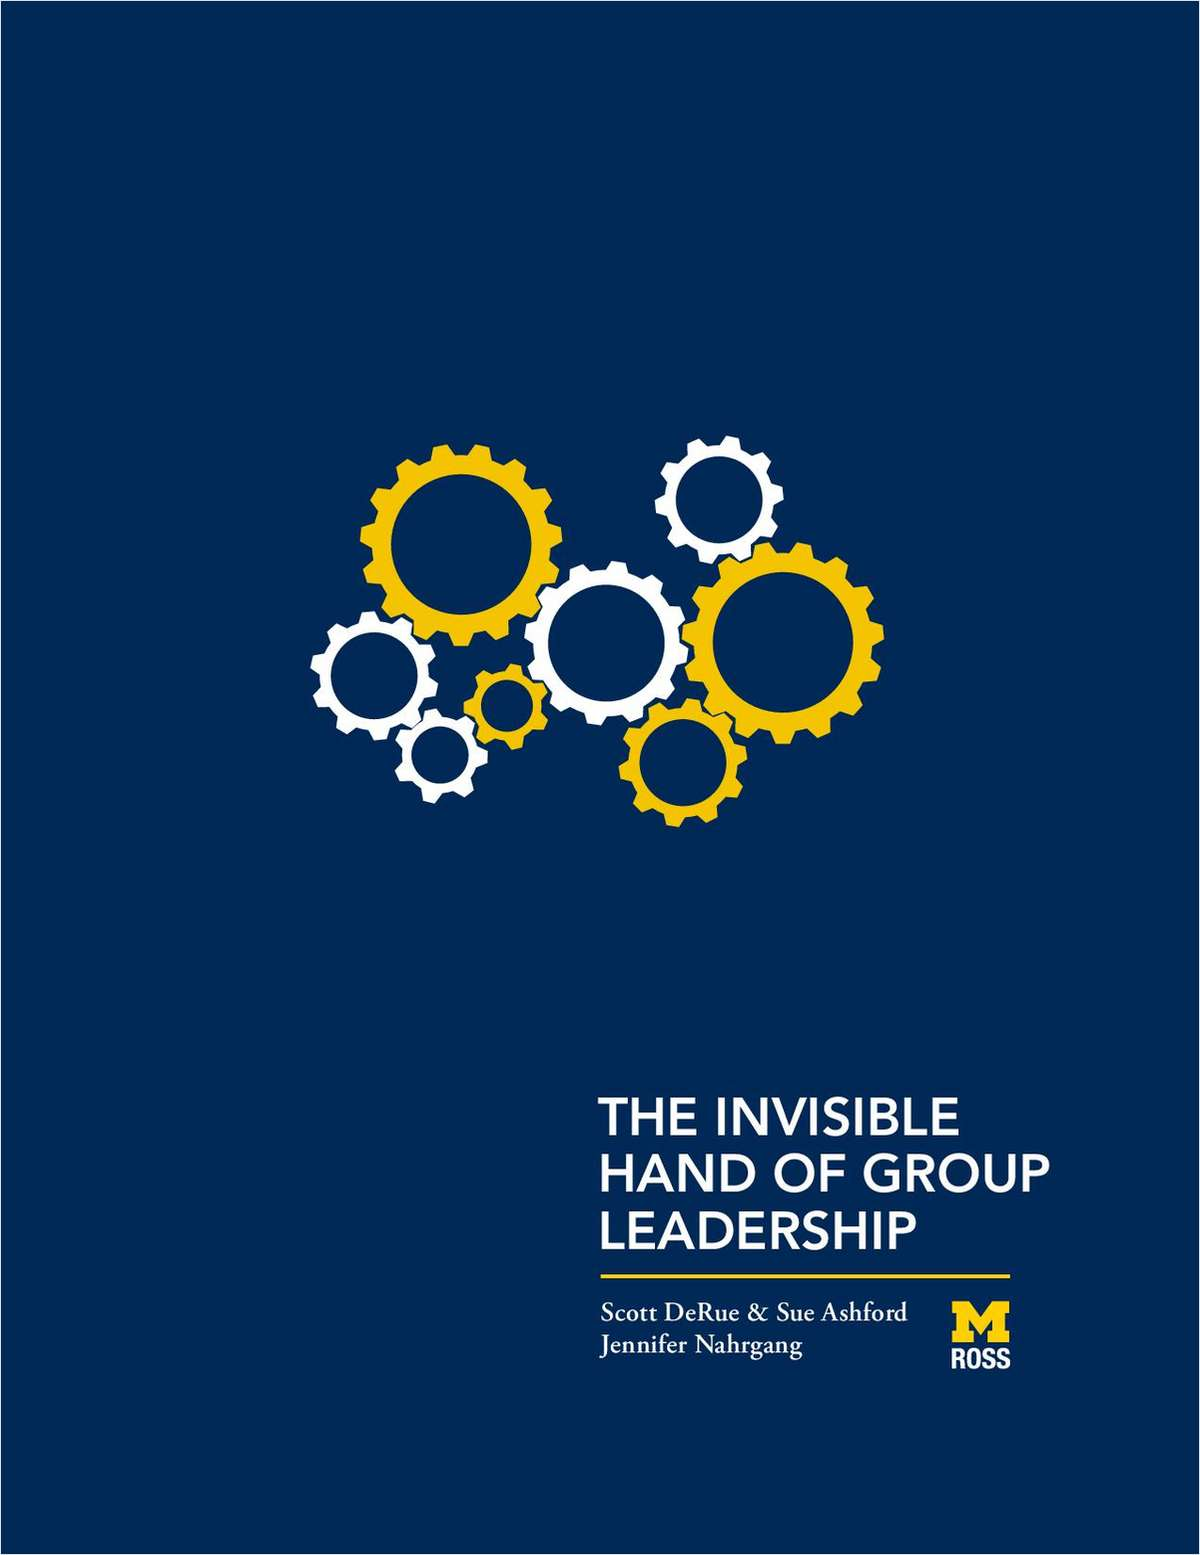 The Invisible Hand of Group Leadership